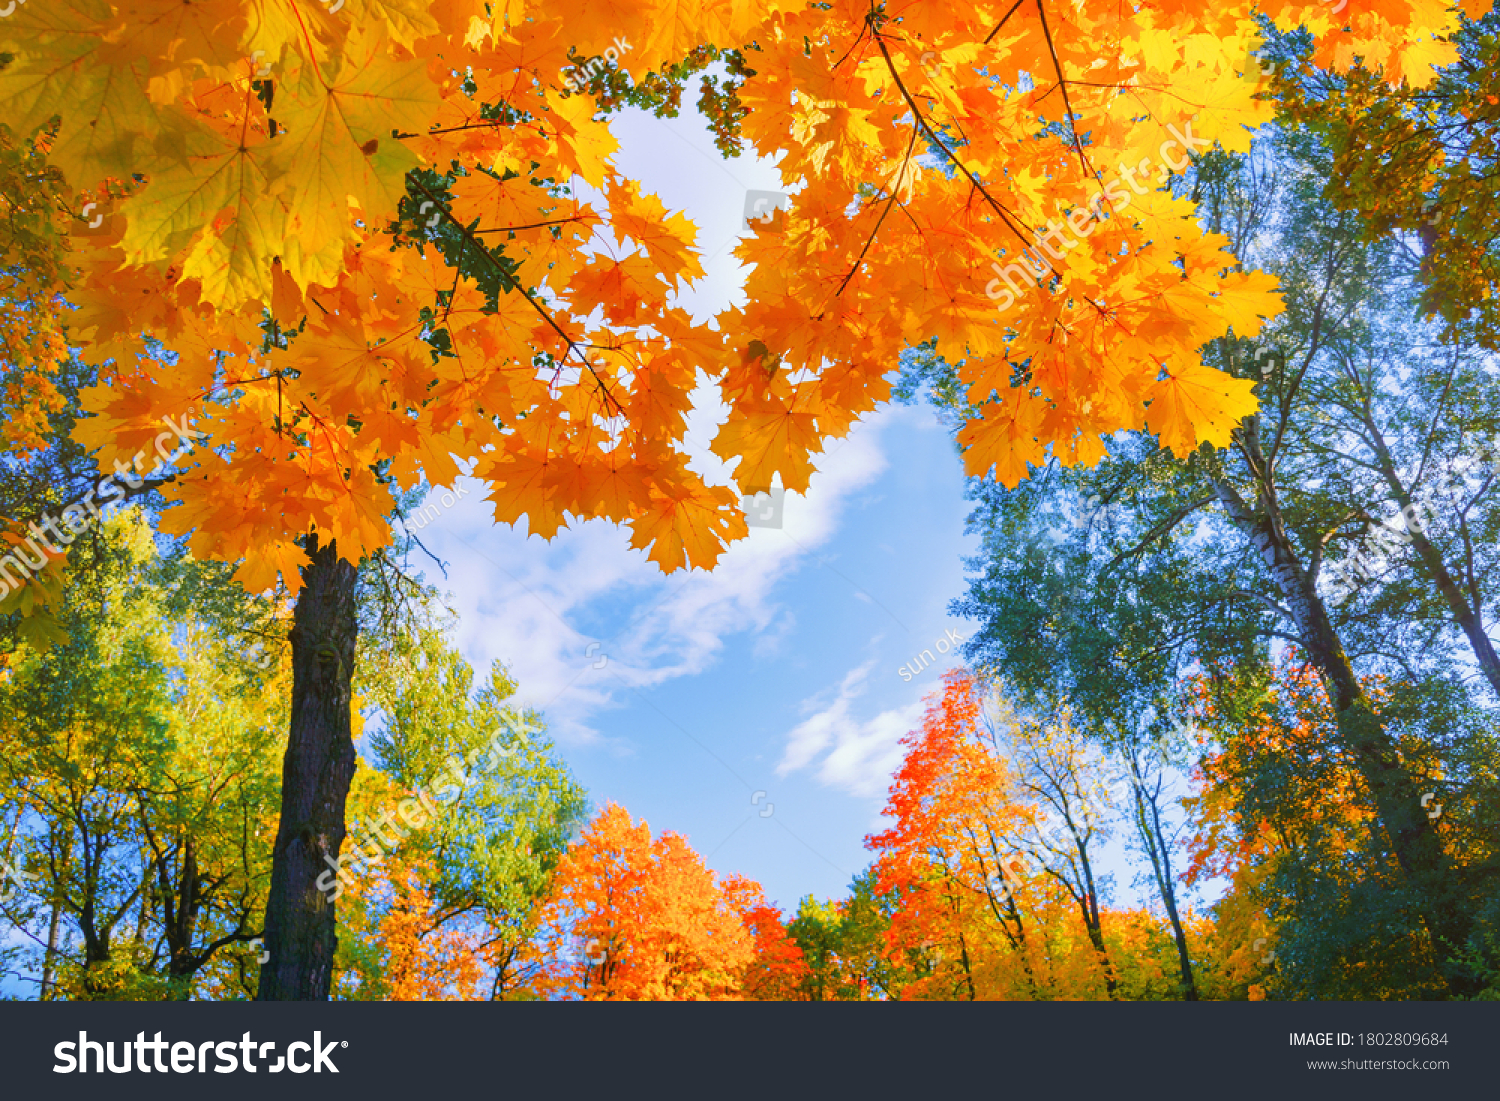 Autumn background landscape. Yellow color tree, red orange foliage in fall forest. Abstract autumn nature beauty scene October season sun heart shape sky Calm season life feel. Fall nature tree leaves #1802809684